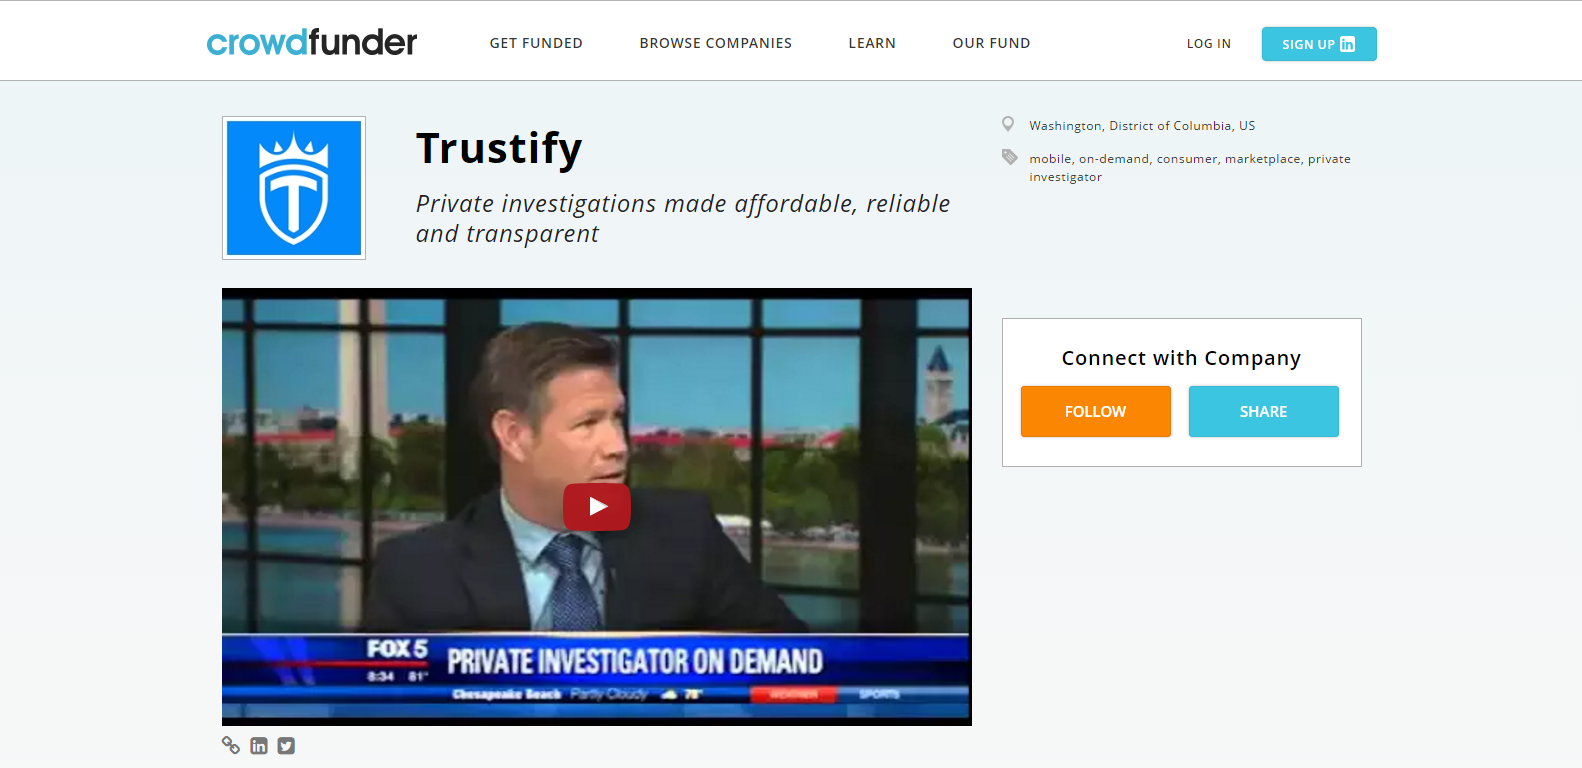 Trustify crowdfunder WE the CROWD